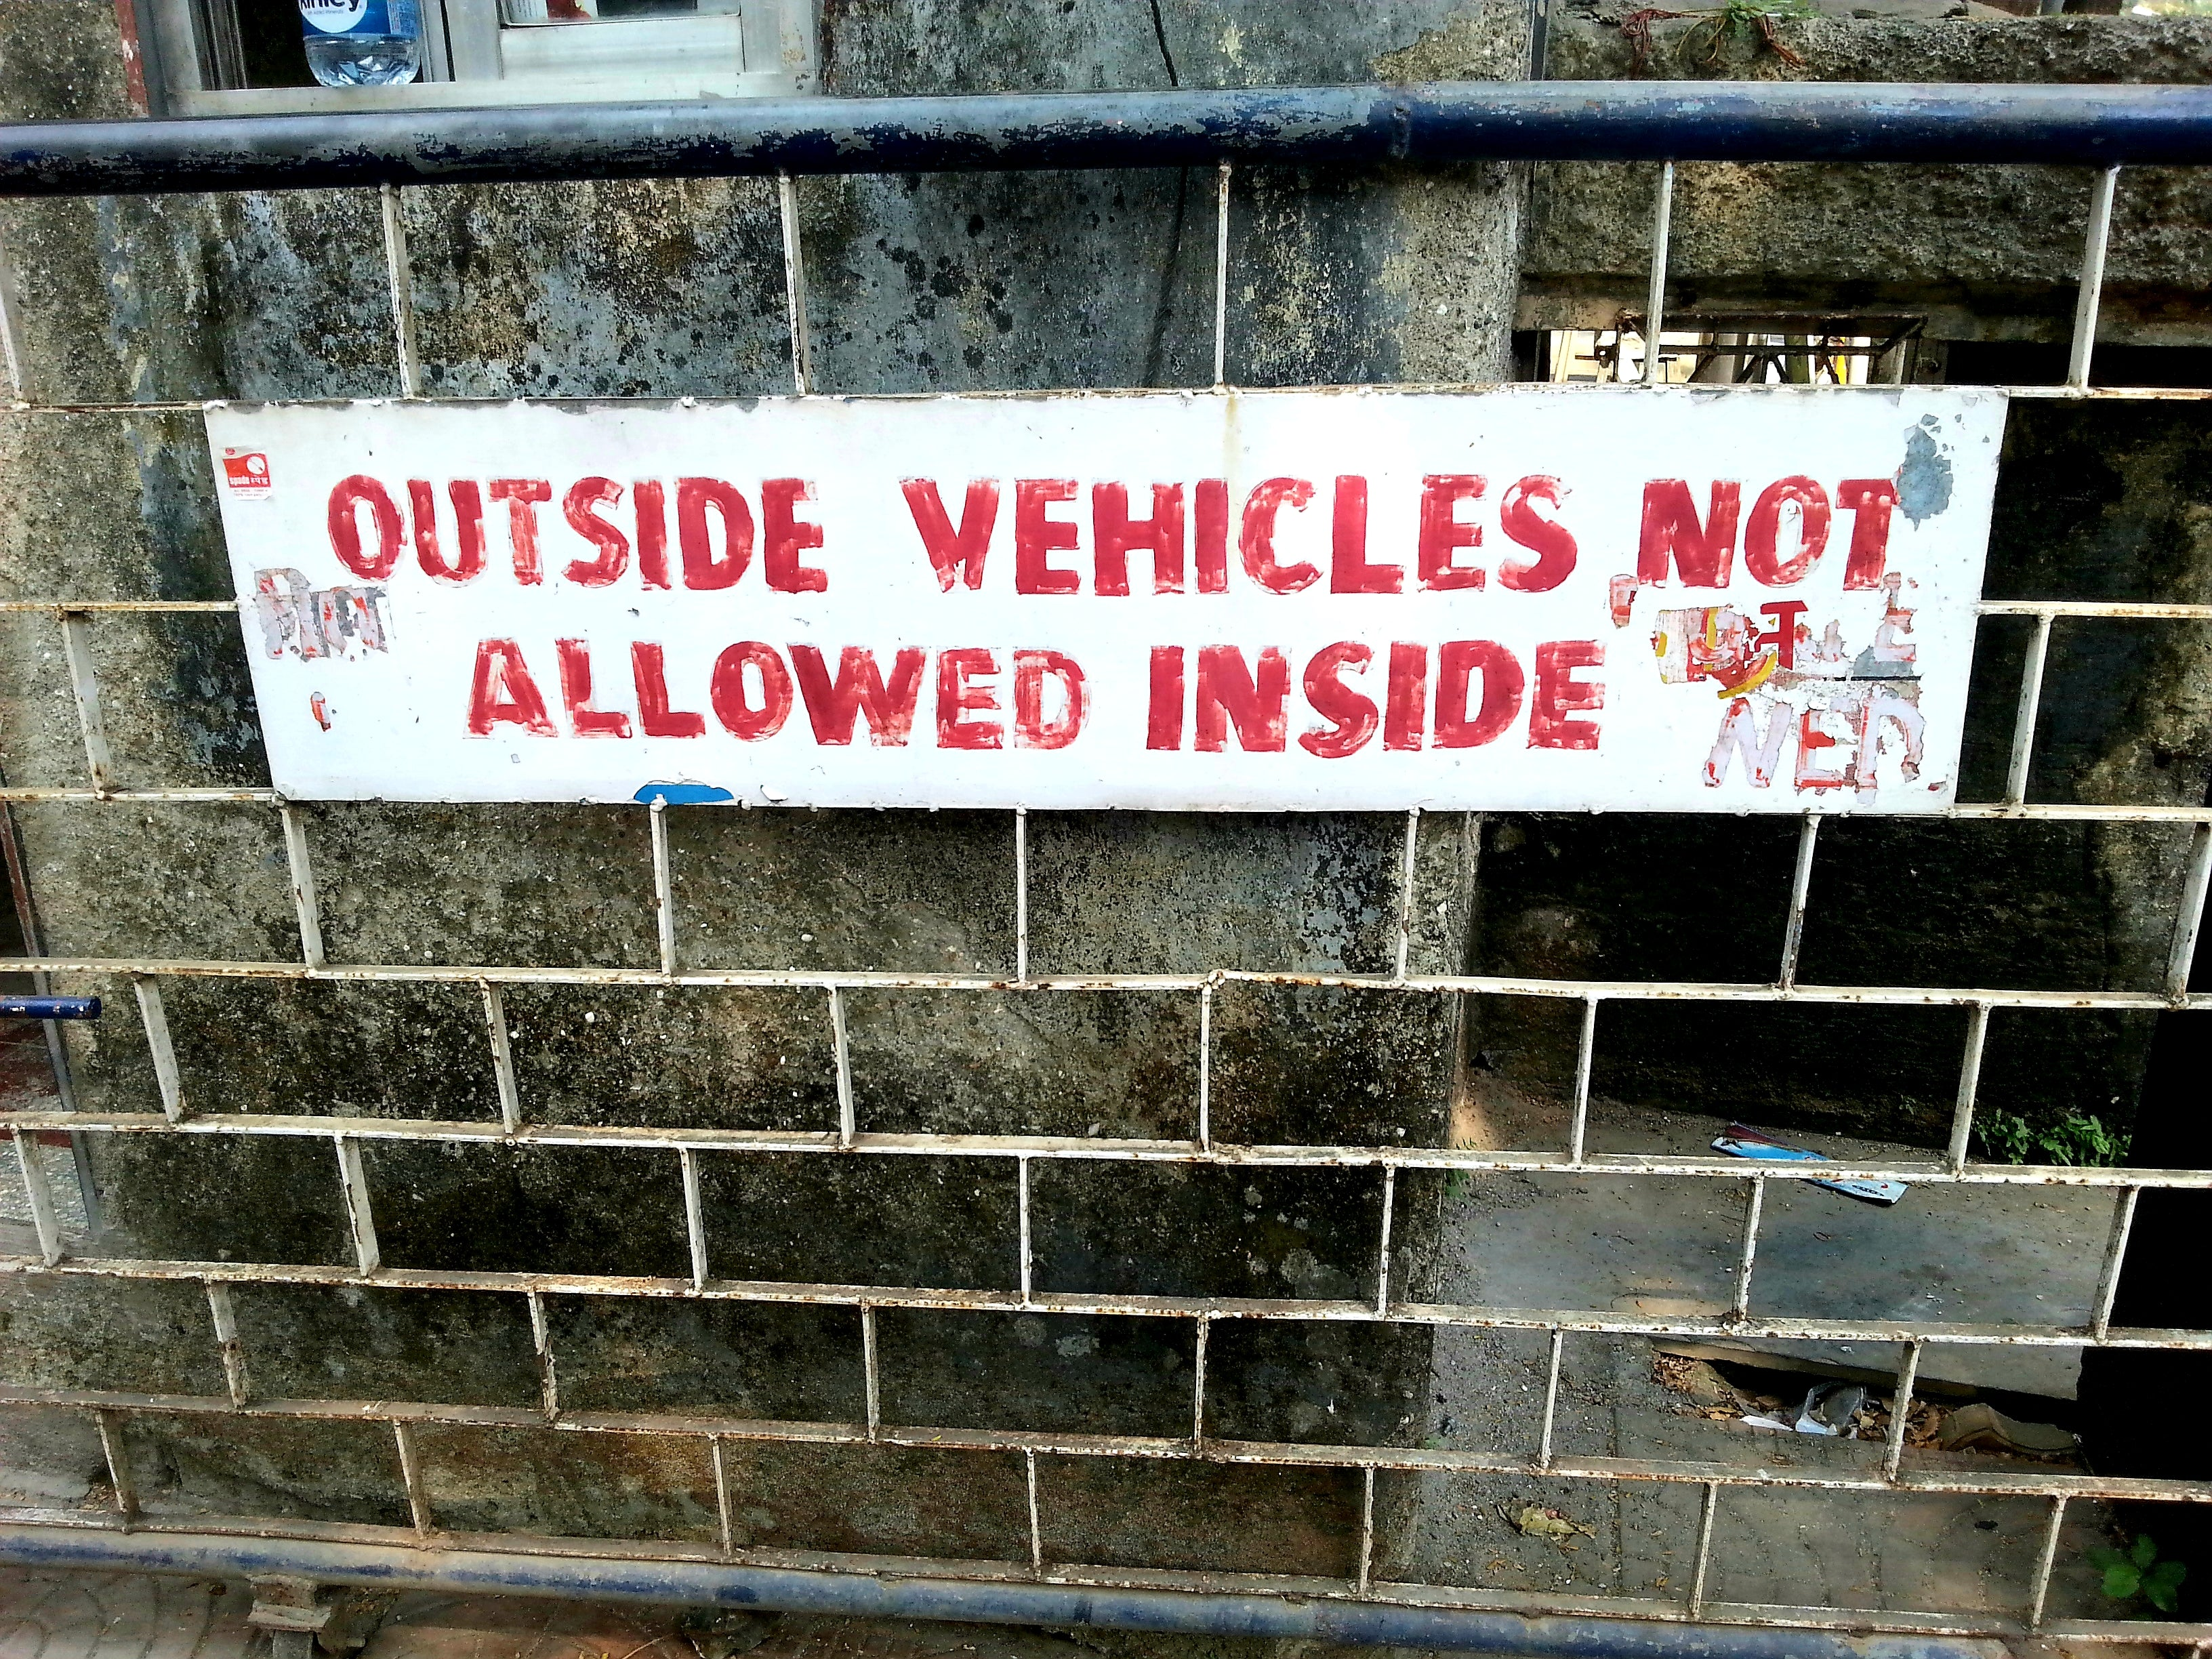 Australian Cricket Tours - An Unique Sign In India On A Gate That Reads 'Outside Vehicles Not Allowed Inside'!